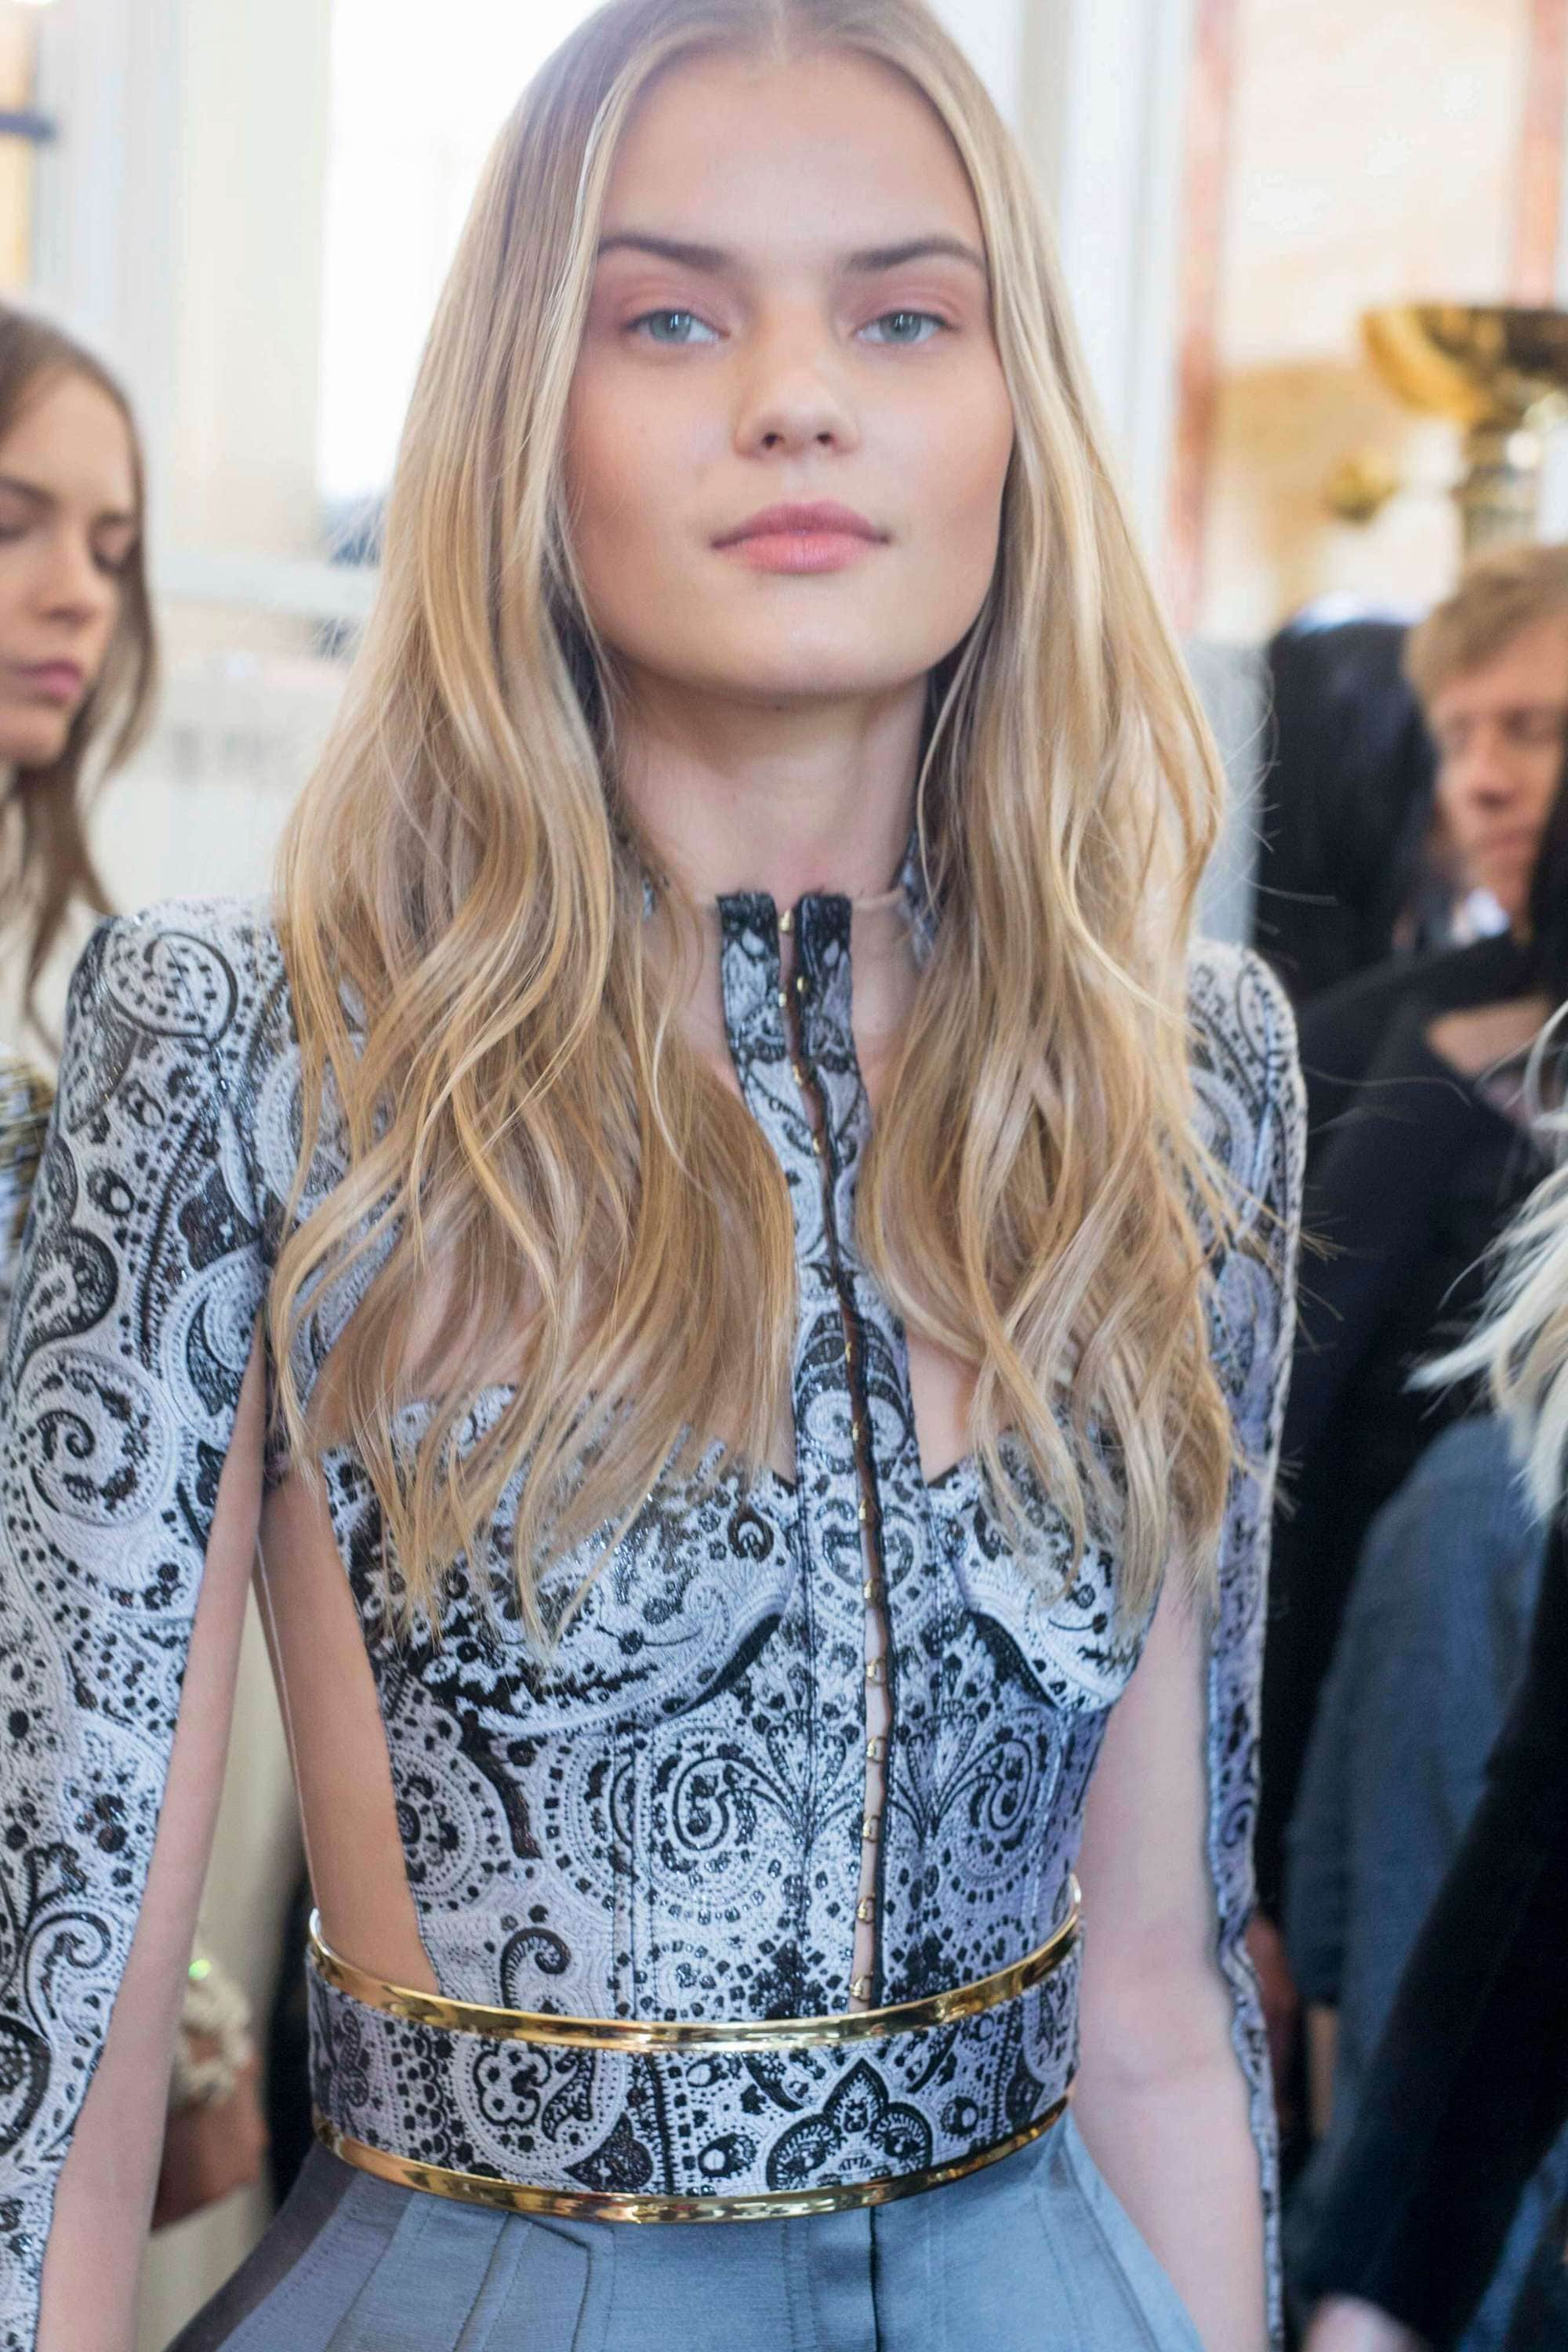 hairstyles for wavy hair: model backstage with long blonde wavy hair